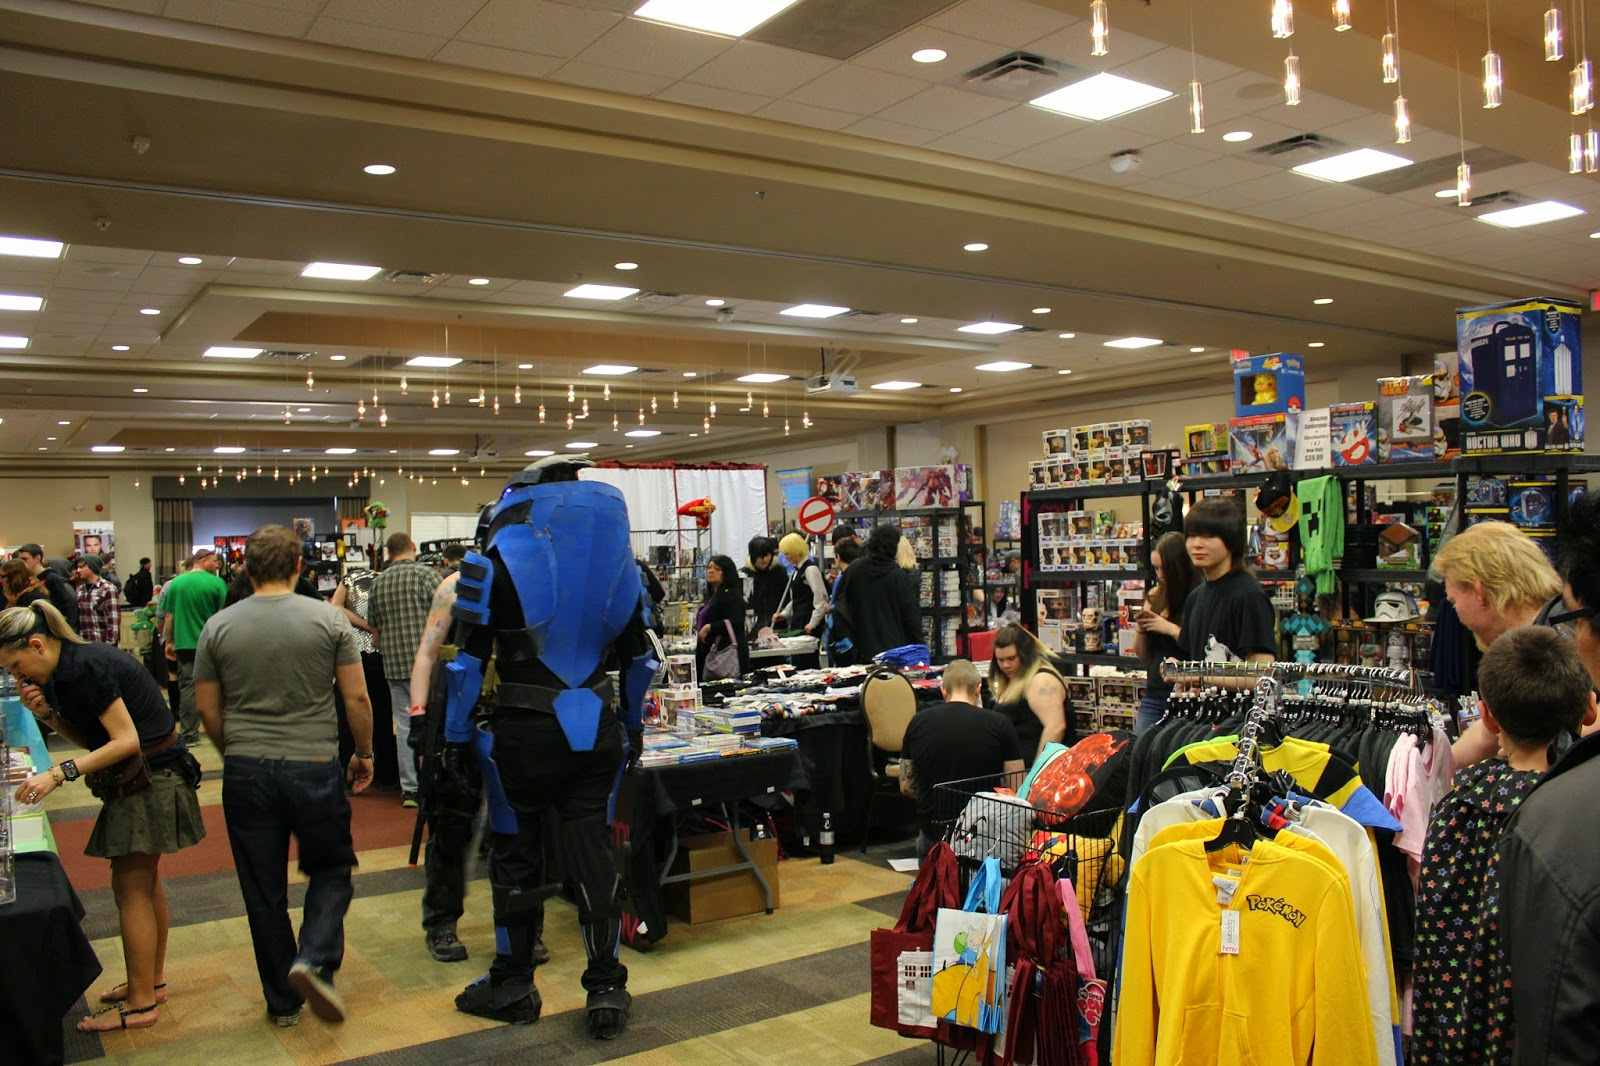 photo essay c wonderland jason takes comedy seriously people mill about at c4 central canadian comic con wonderland at the viscount gort hotel taking in the sites and shops